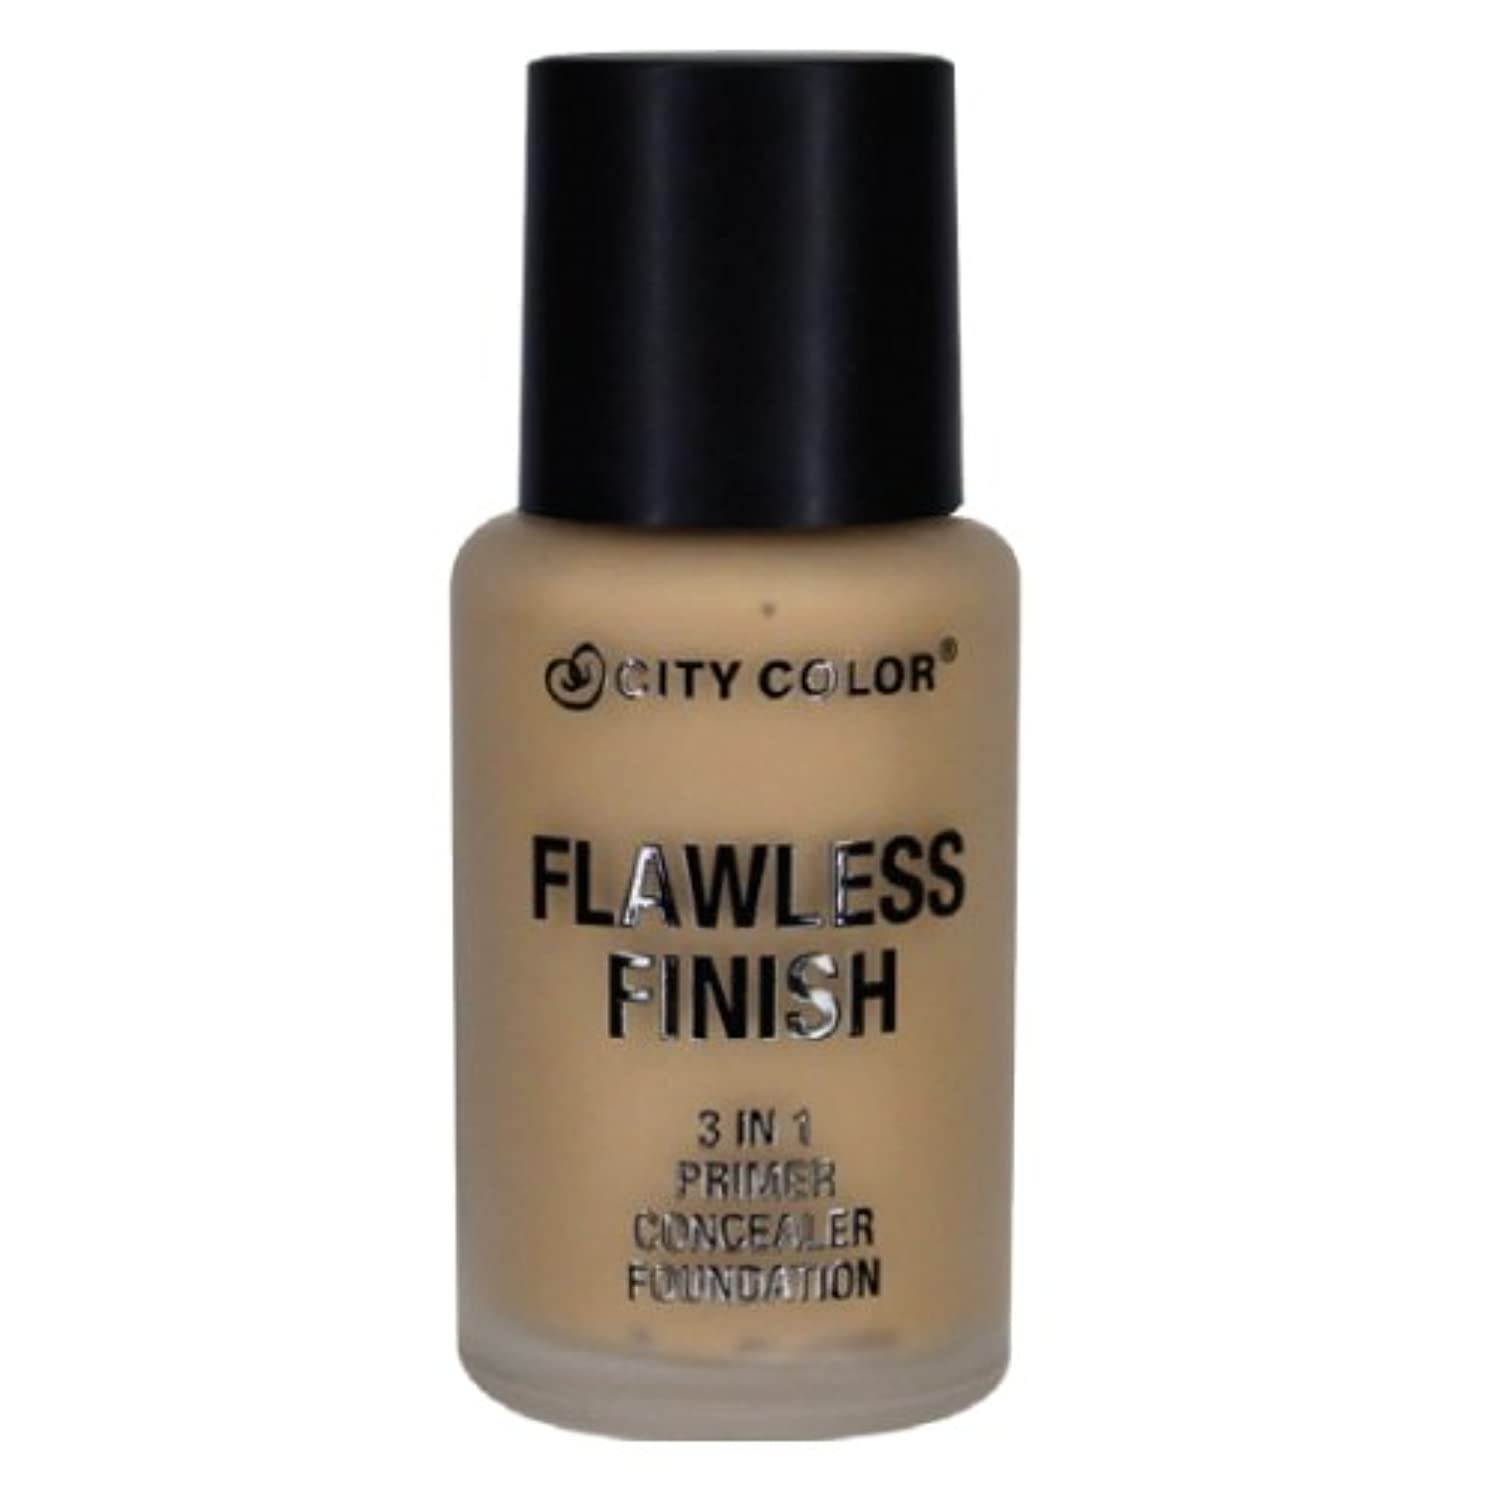 説明的楽観優雅なCITY COLOR Flawless Finish 3 In 1 Primer, Concealer Foundation - Medium (並行輸入品)